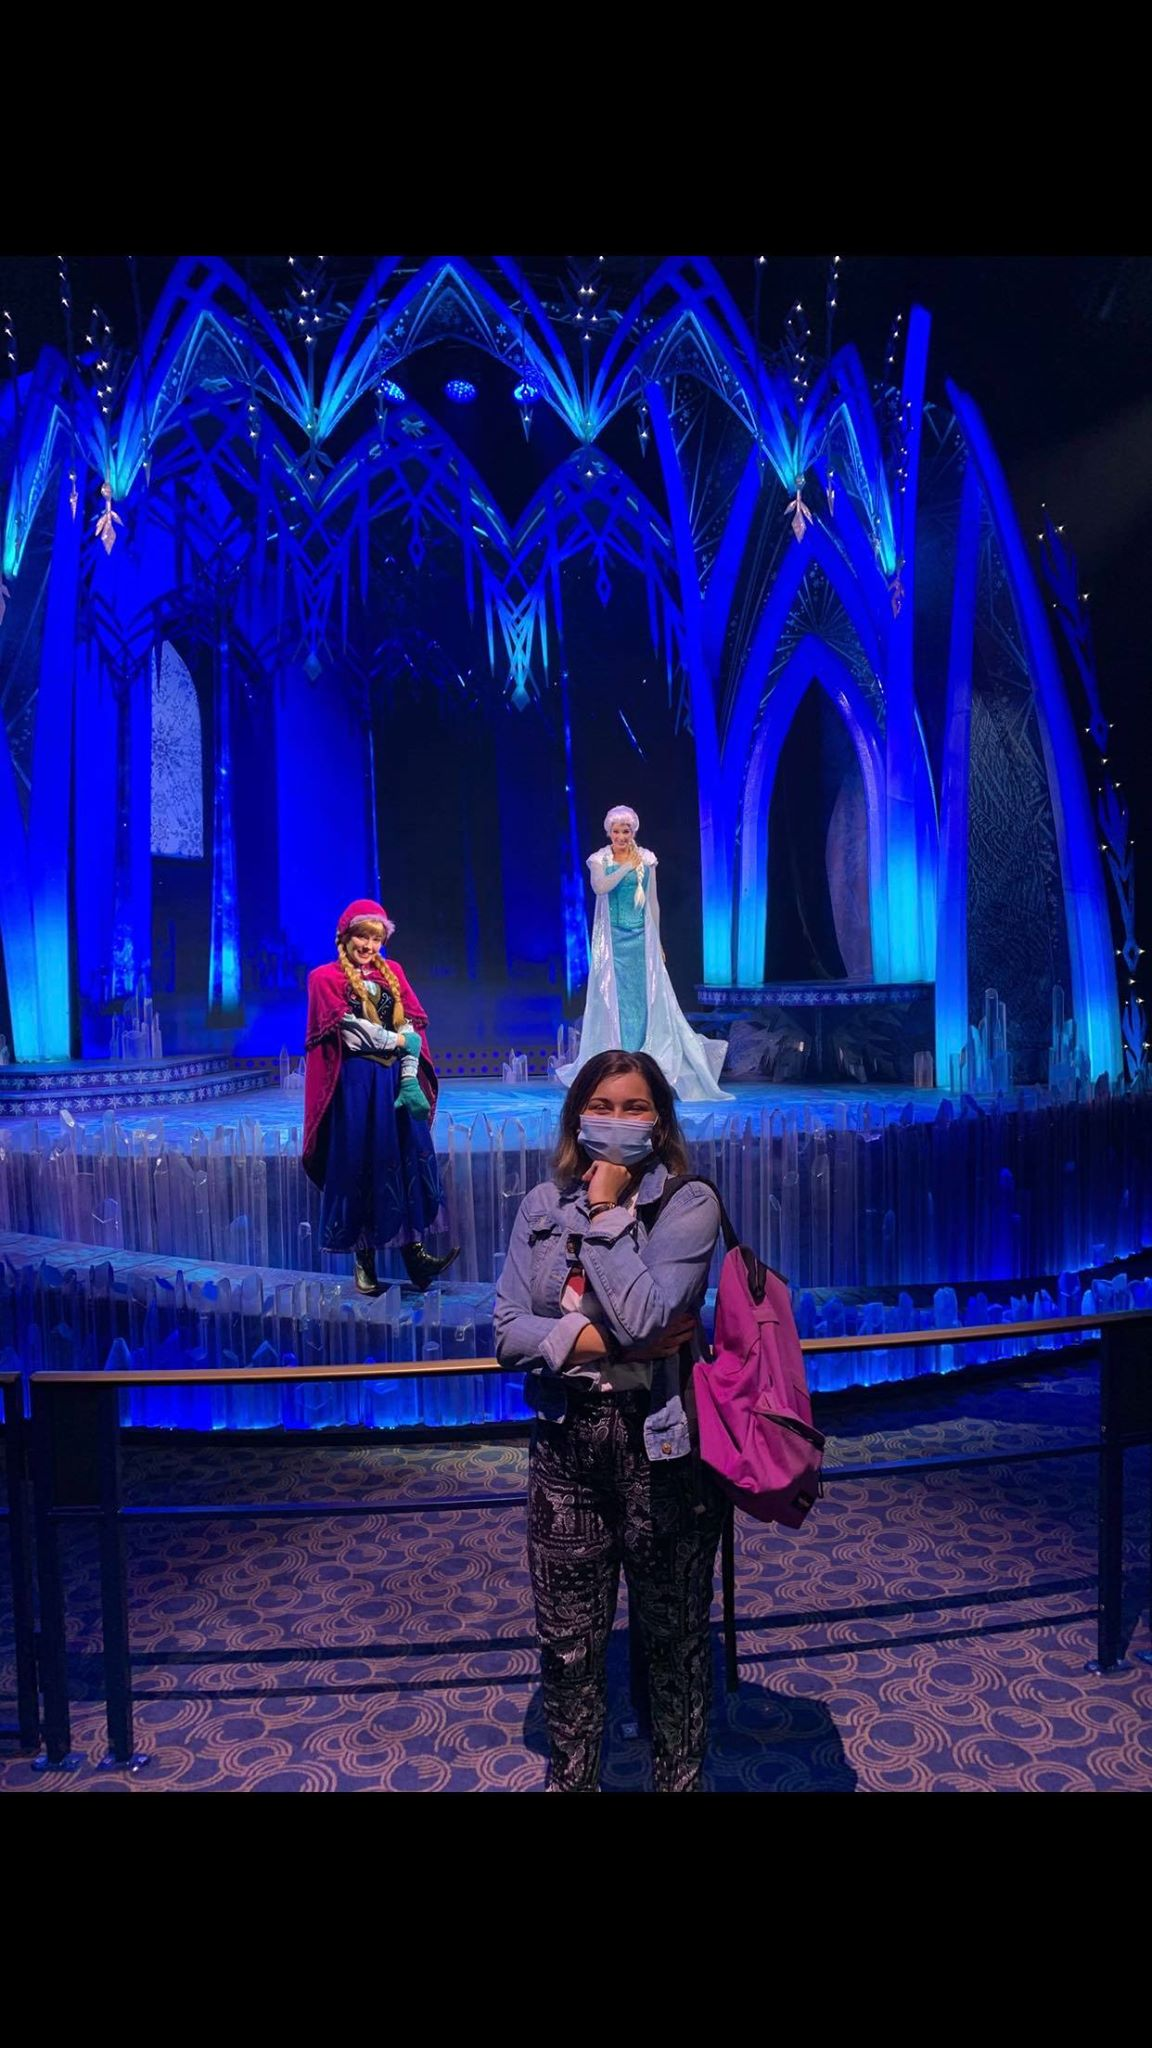 moments enchantés au royaume d'arendelle